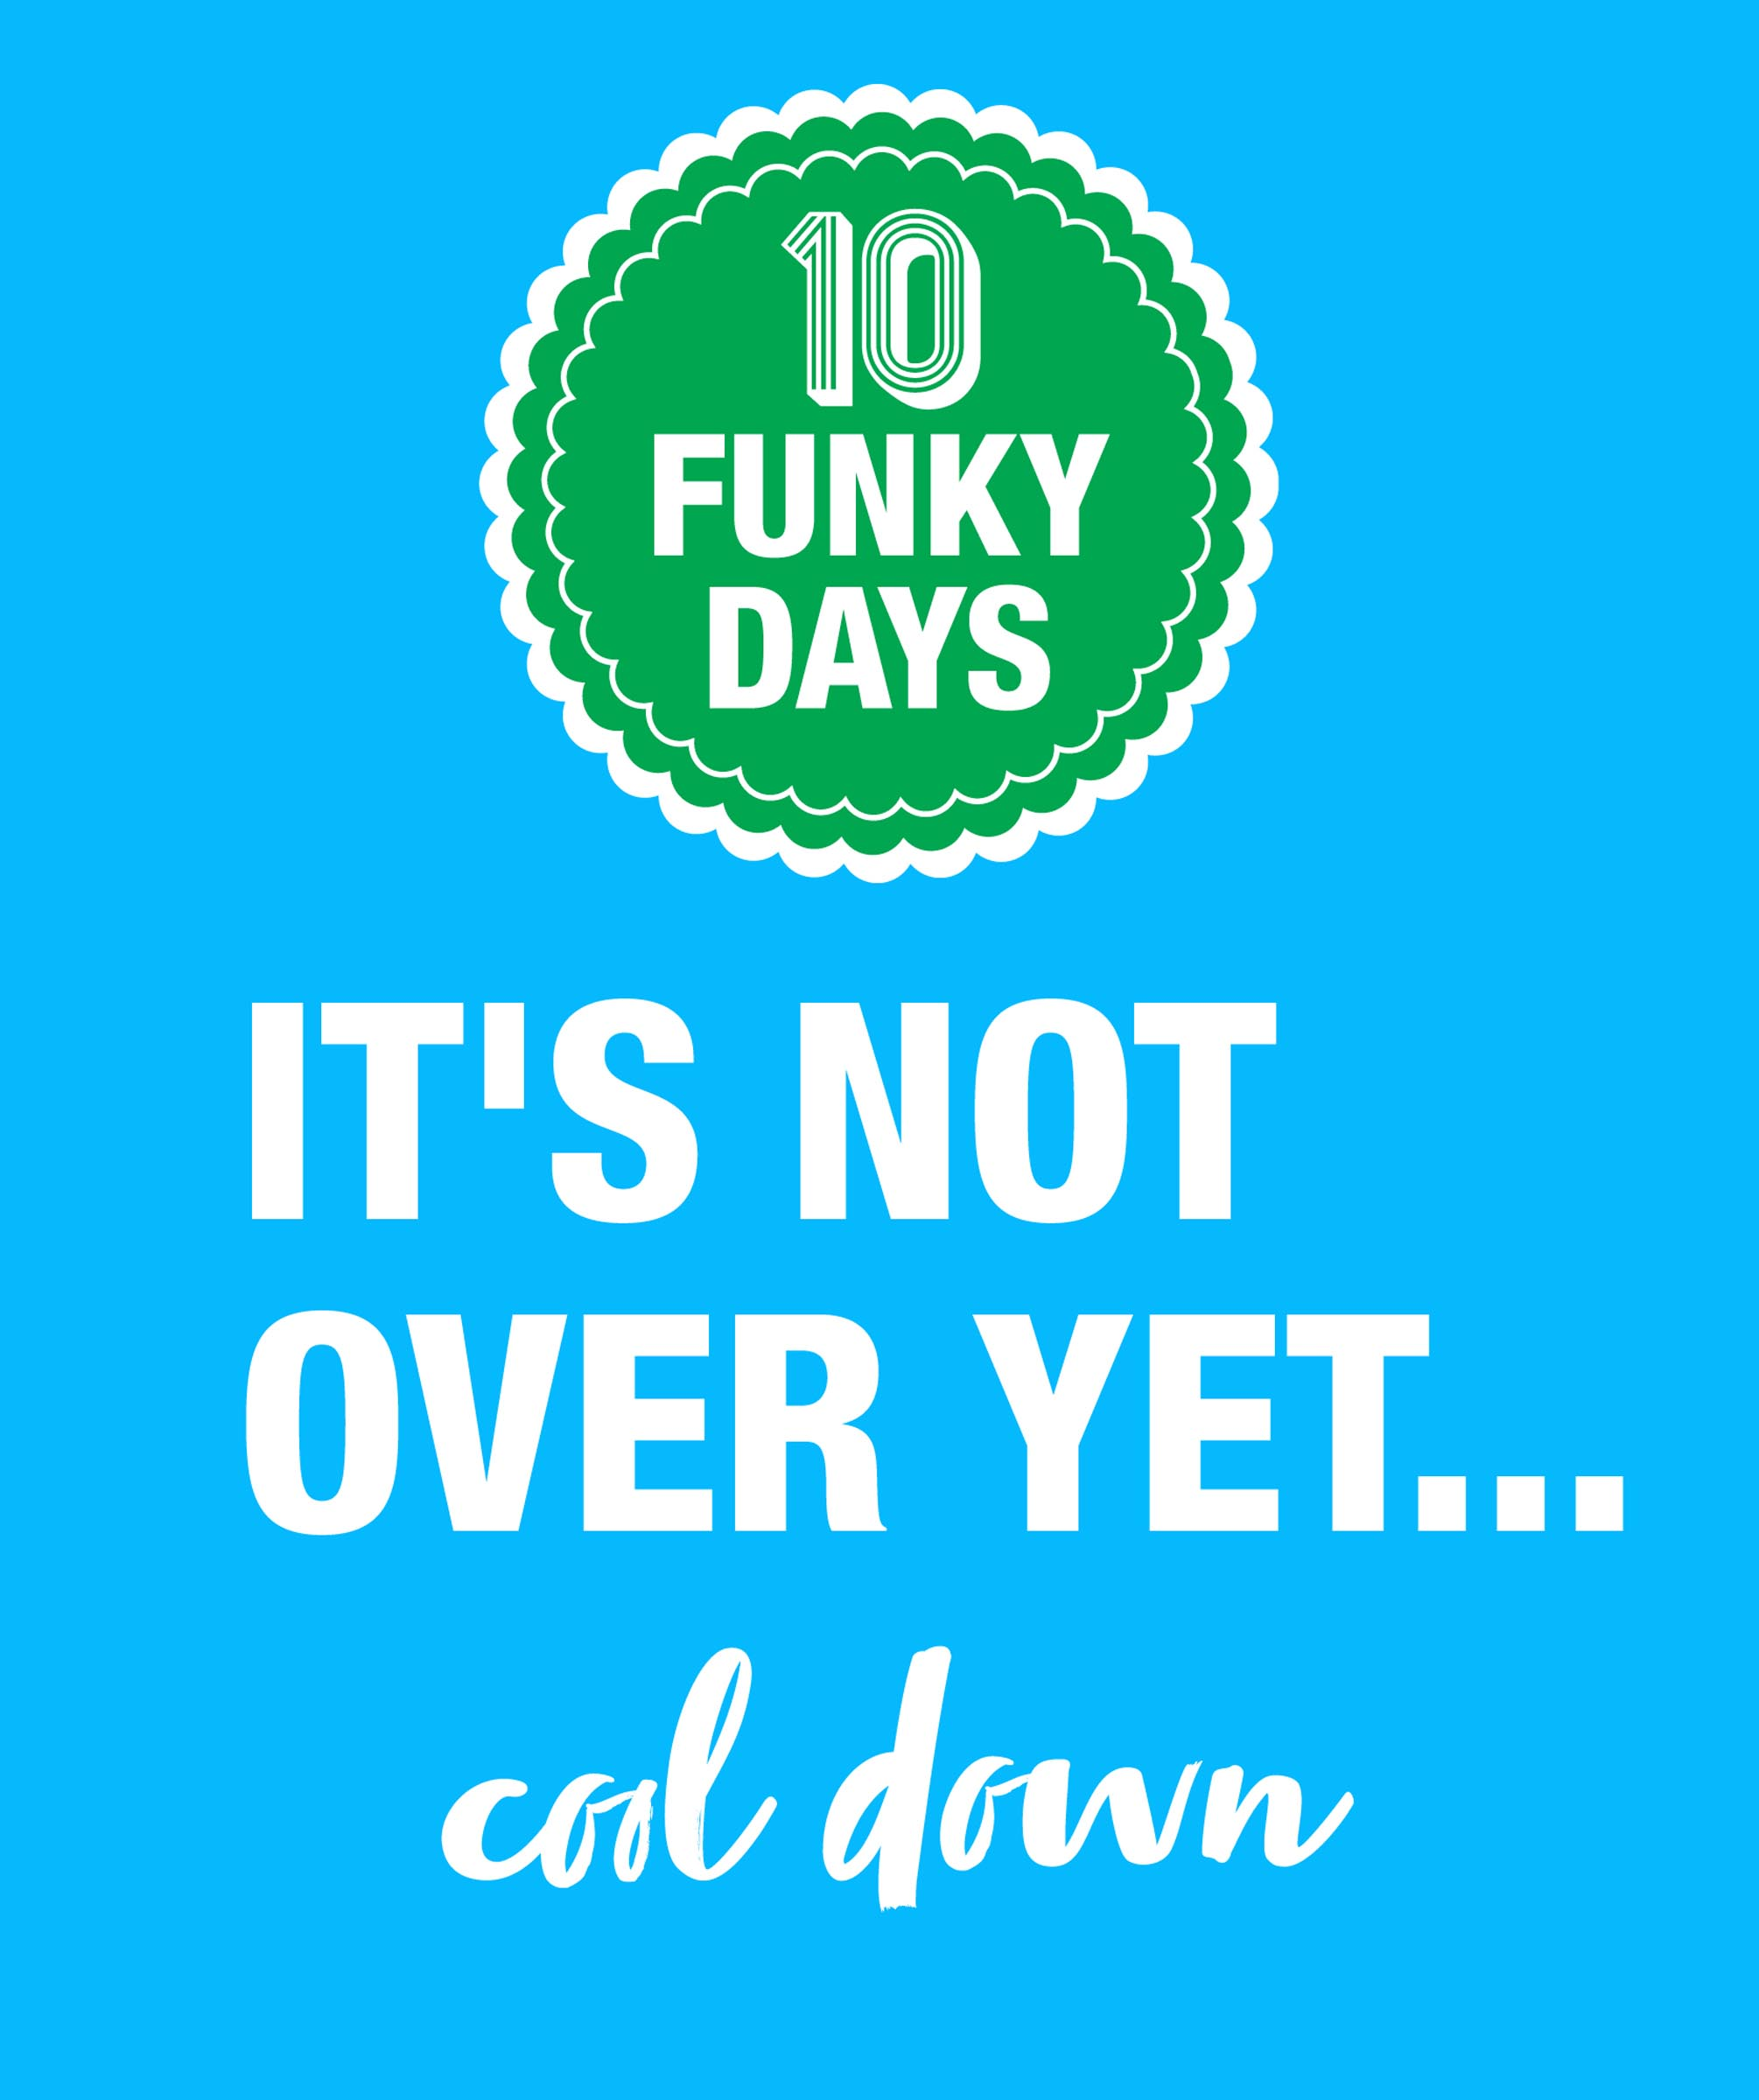 10 Funky Days - Cool Down